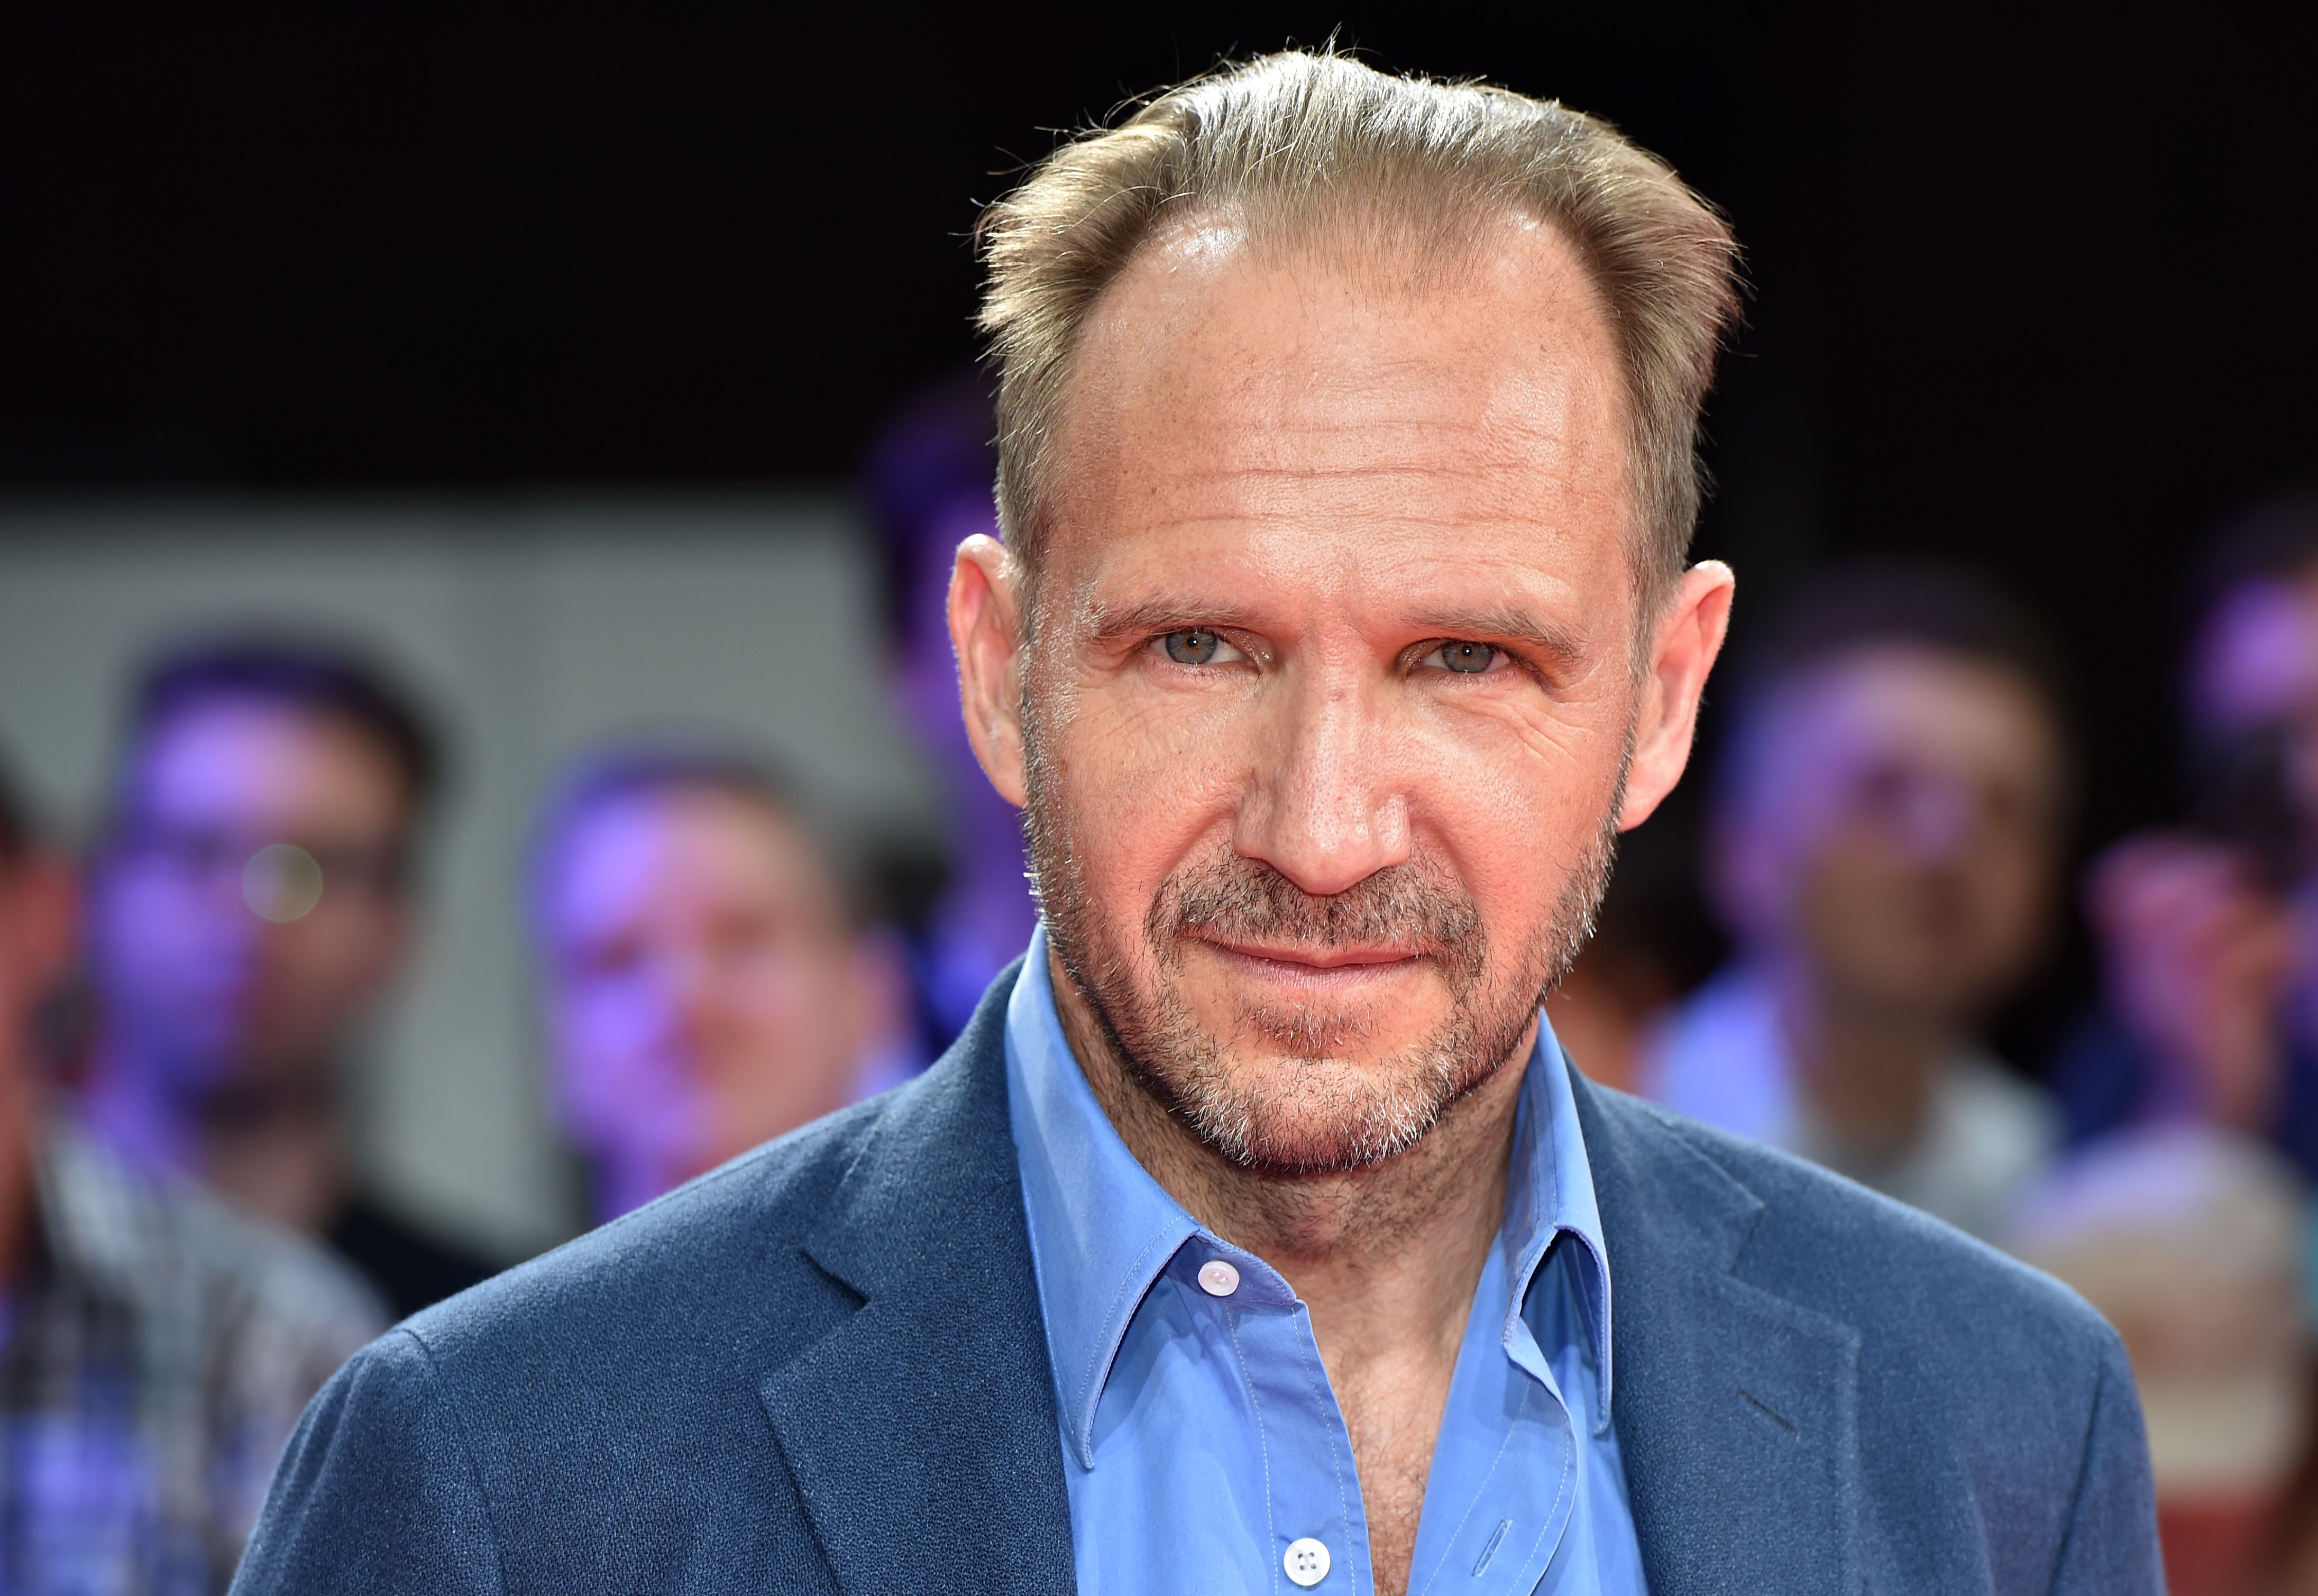 Ralph Fiennes at the Munich Film Festival in 2019 in Munich, Germany | Source: Getty Images